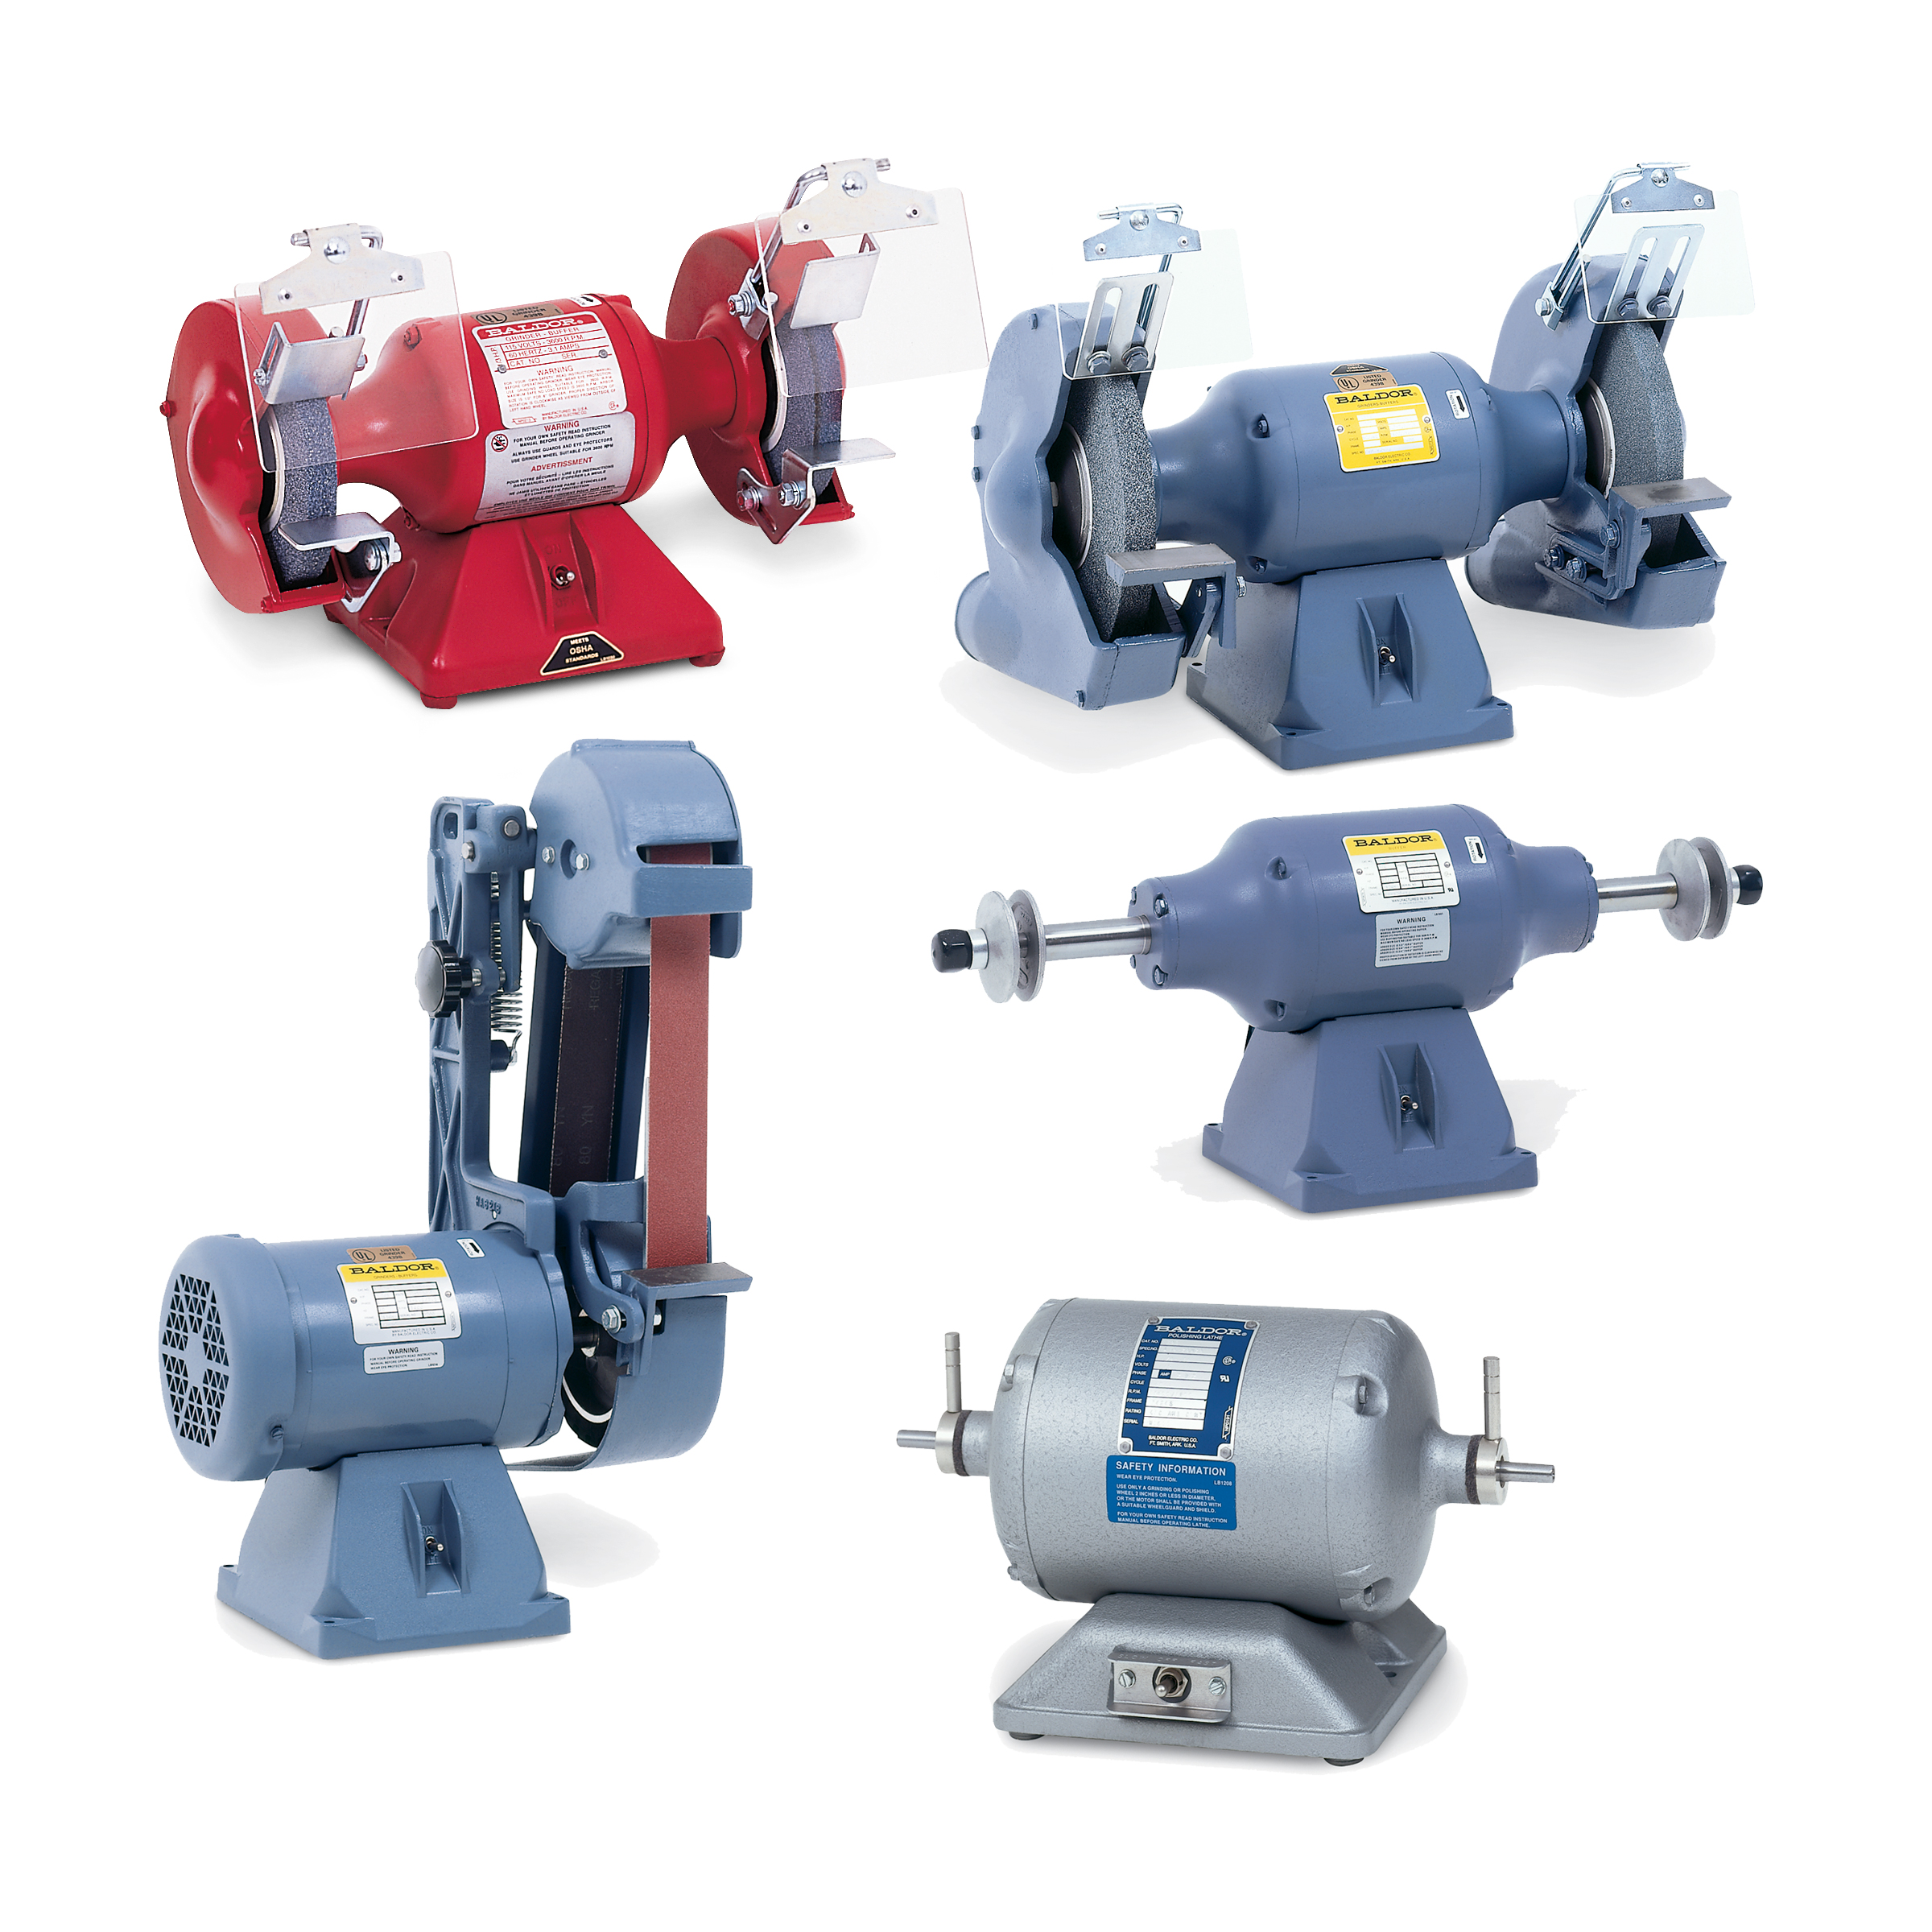 baldor reliance grinders buffers lathes sanders family.ashx?bc=white&as=1&w=1024 grinders, buffers, lathes baldor com  at n-0.co